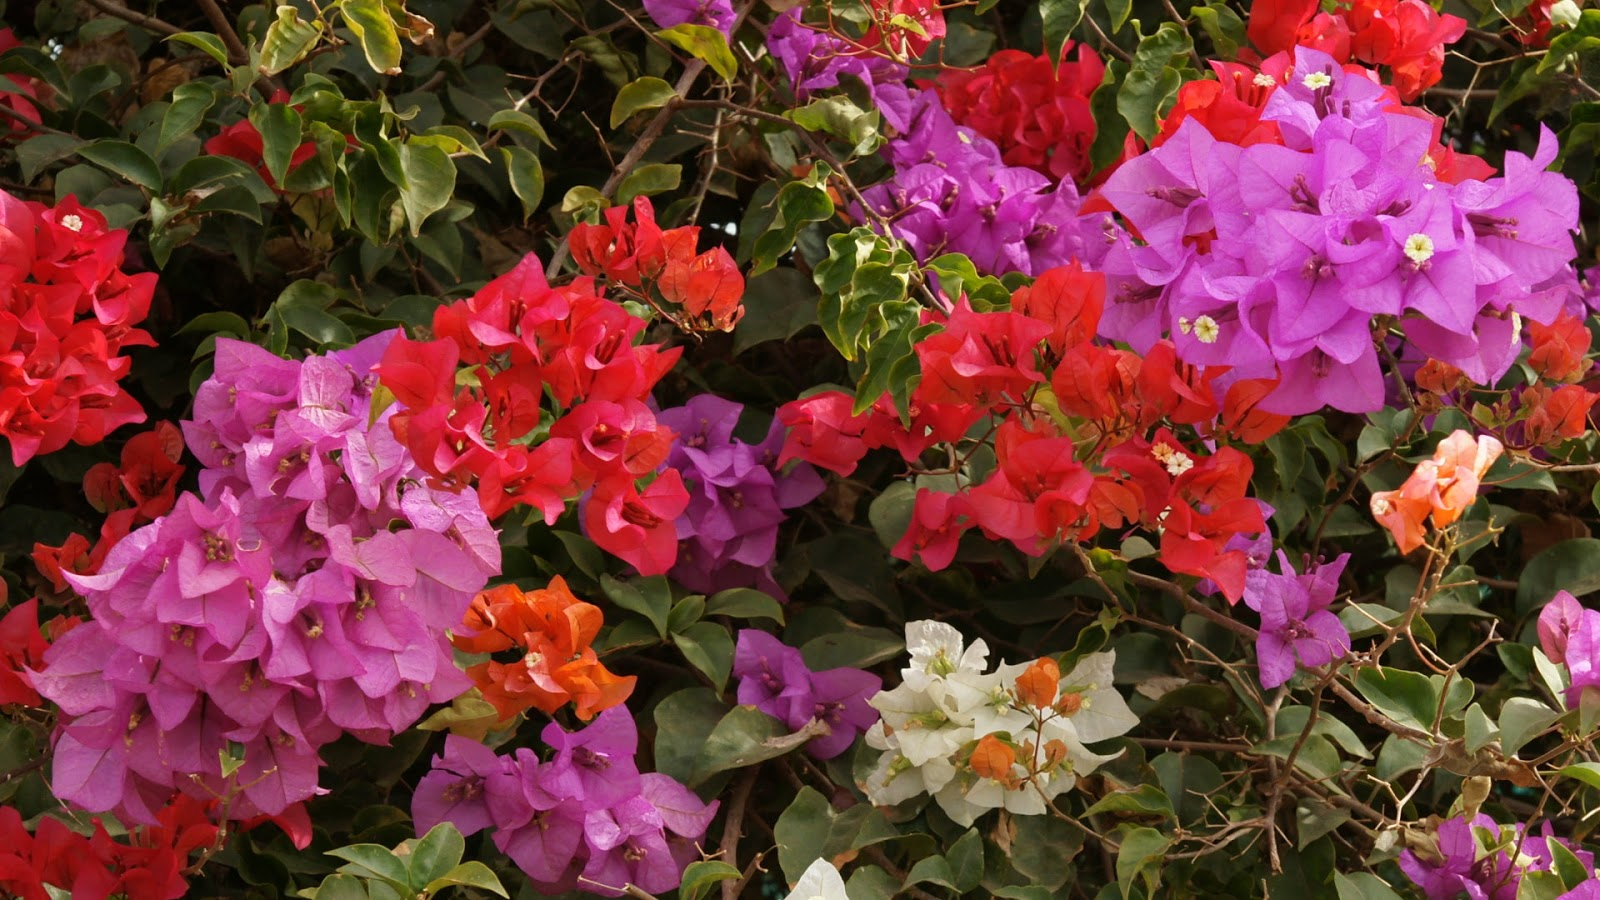 Floral Wallpaper For Iphone 5 Bougainvillea Wallpaper Flower Dreams